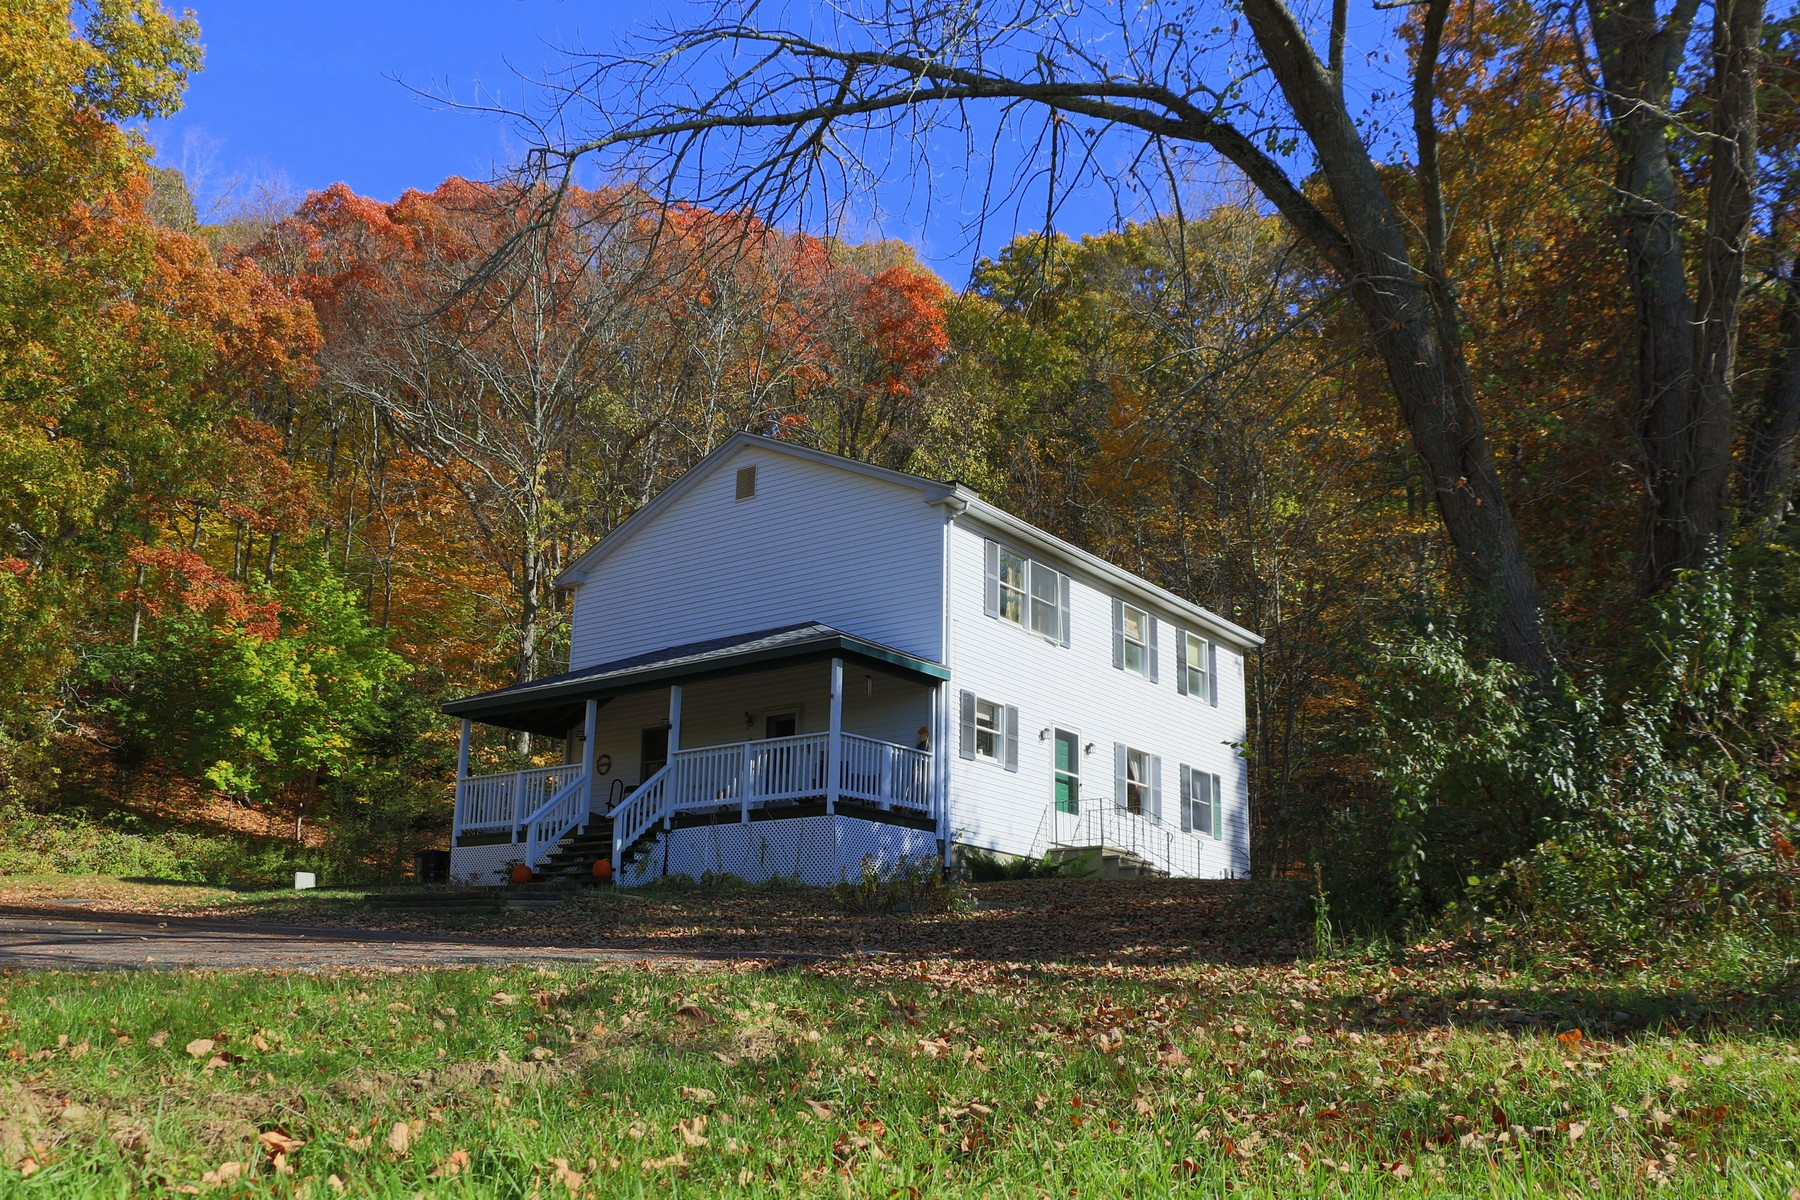 Single Family Home for Sale at Easy Access to Amos Lake 49 Bunny Road Preston, Connecticut, 06365 United States